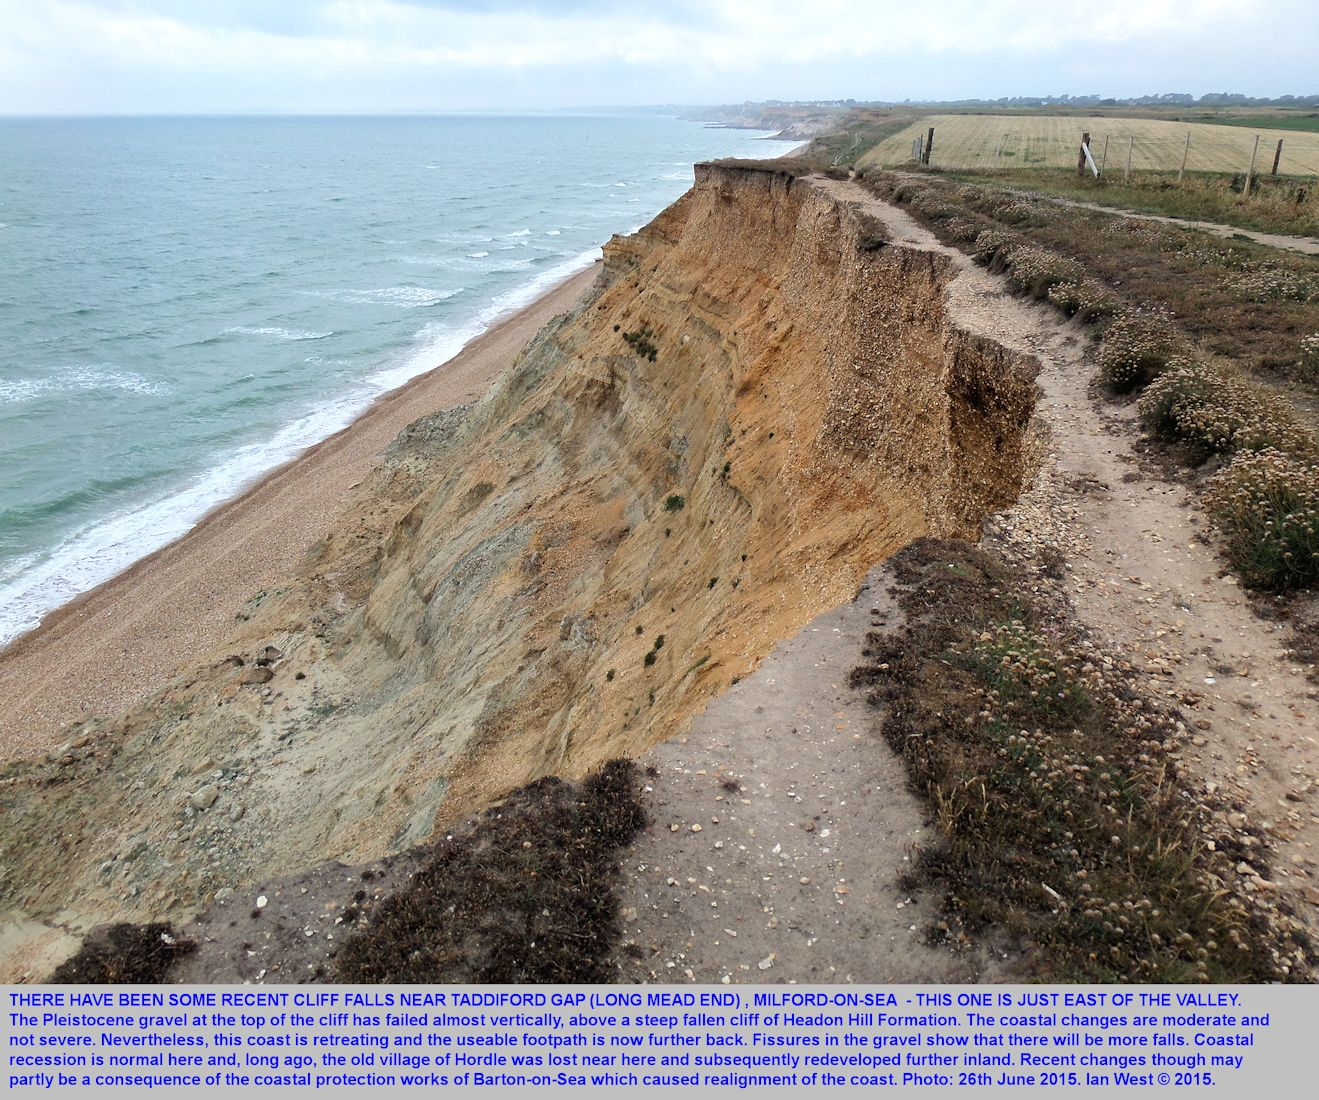 Recent erosion of the cliff just to the east of Taddiford Gap, seen from the cliff top, Hordle Cliff, Hampshire, 26th June 2015